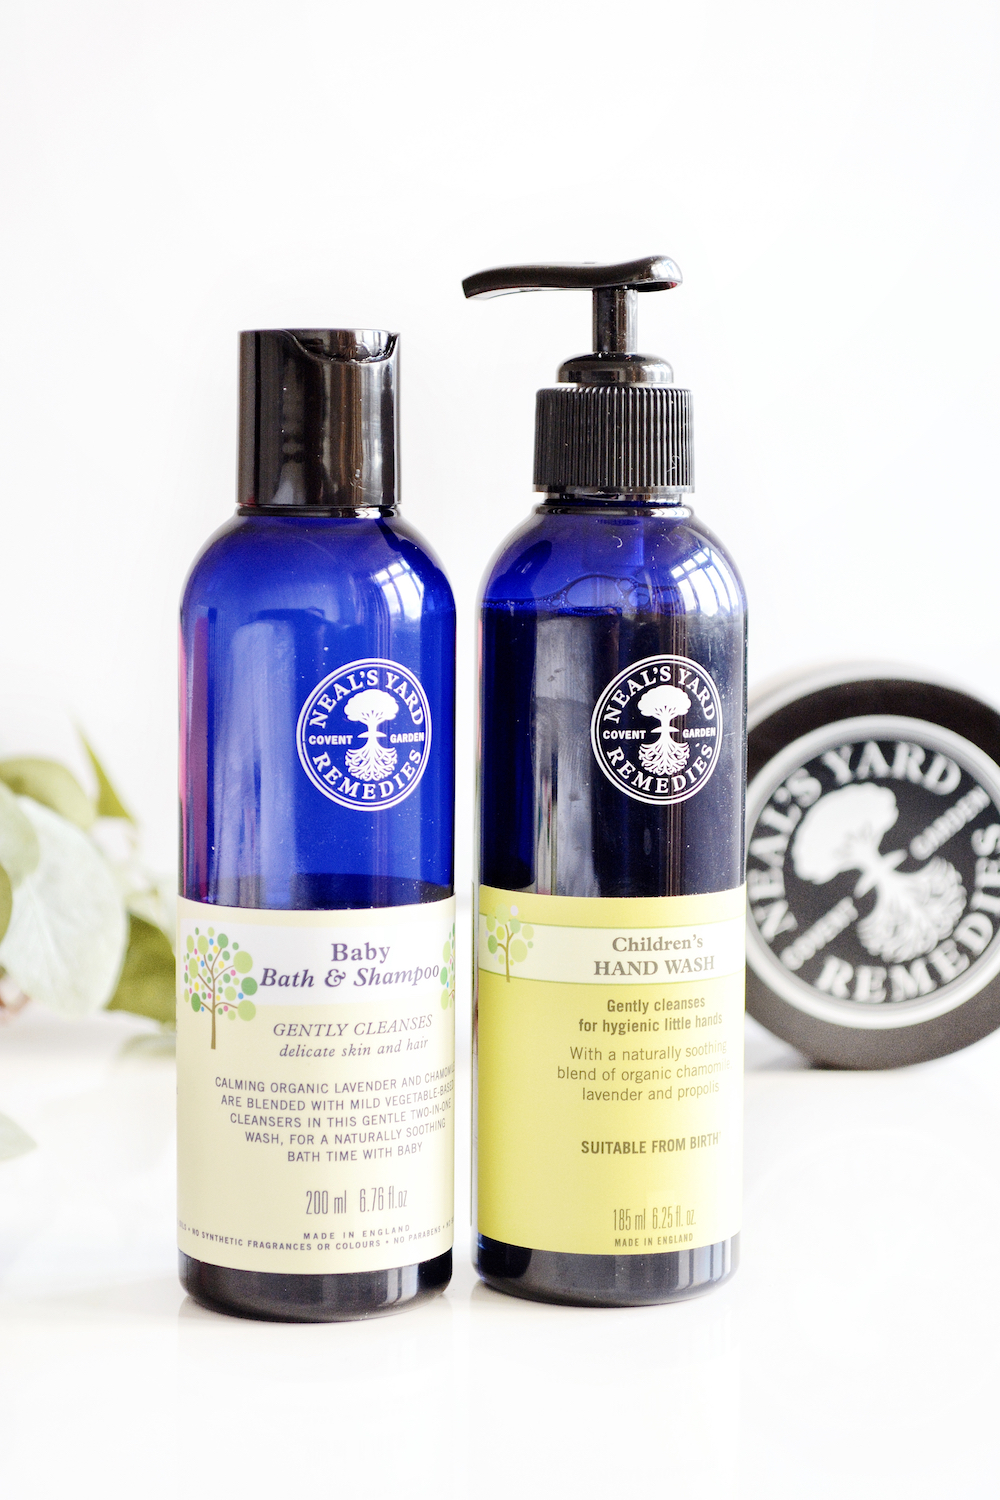 Neal's Yard Remedies Baby Bath & Shampoo and Children's Hand Wash review - gentle and organic products for children with a relaxing lavender scent